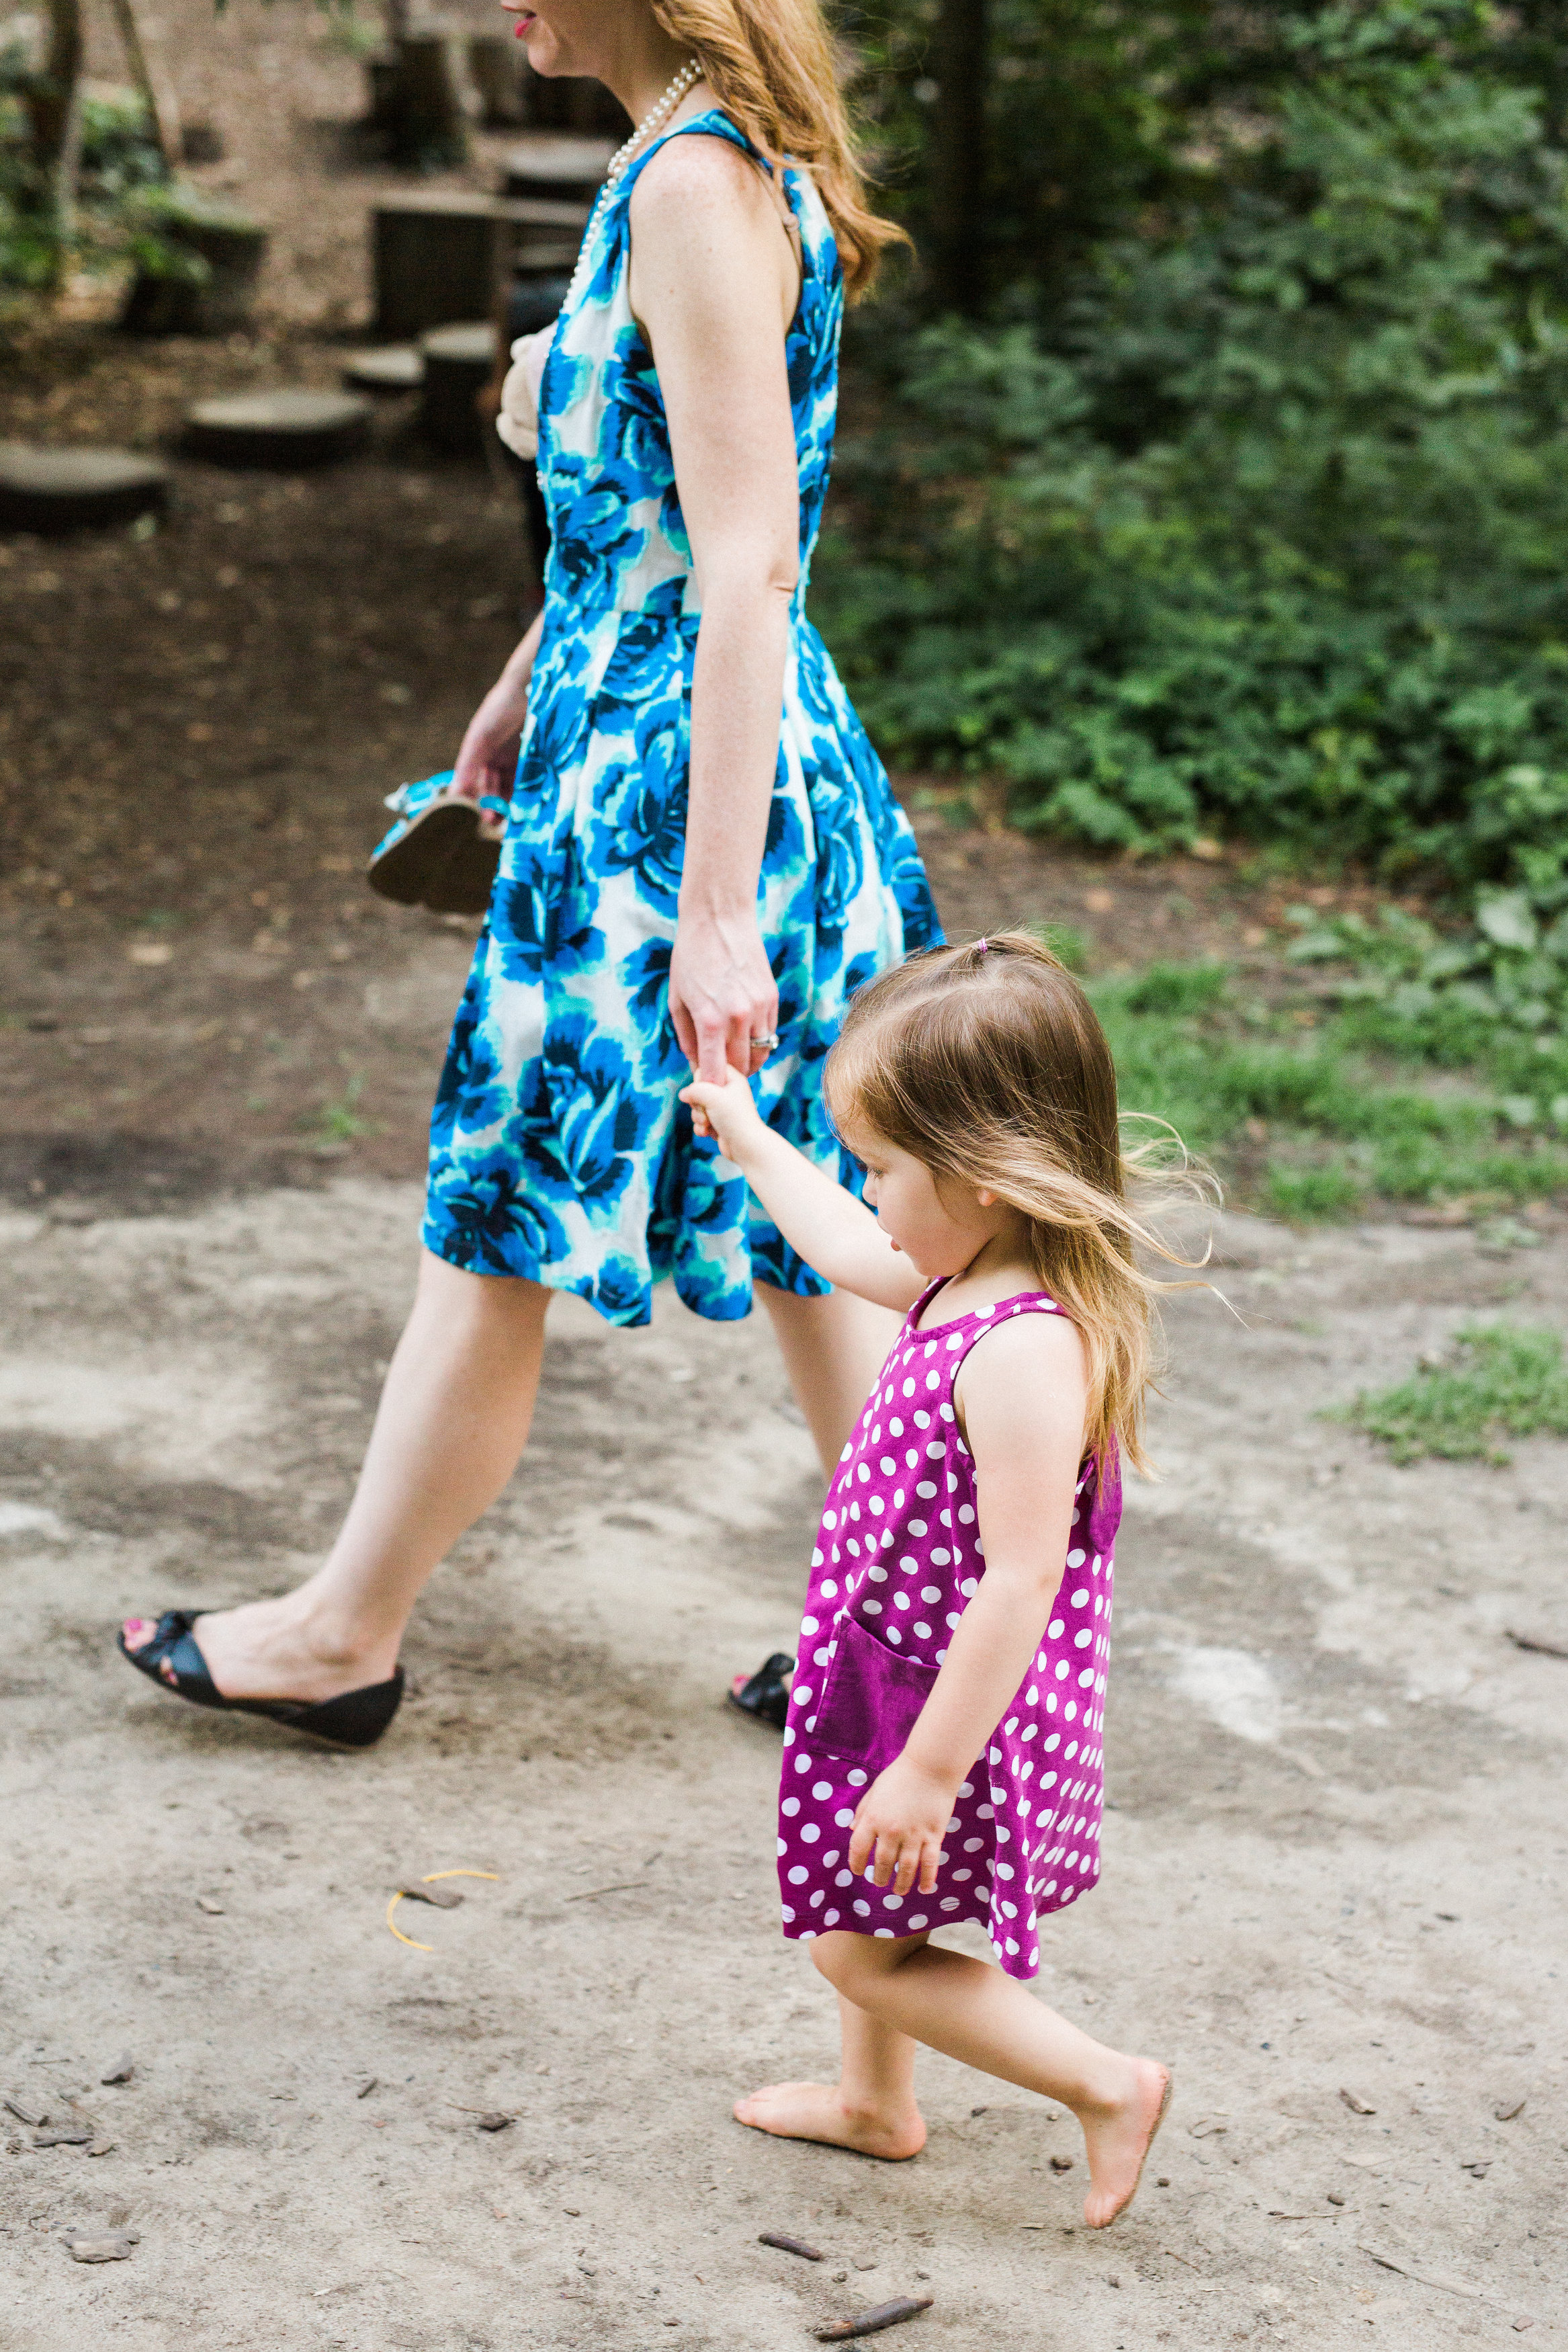 prospect-park-family-photography_natural-playground-26-3.jpg